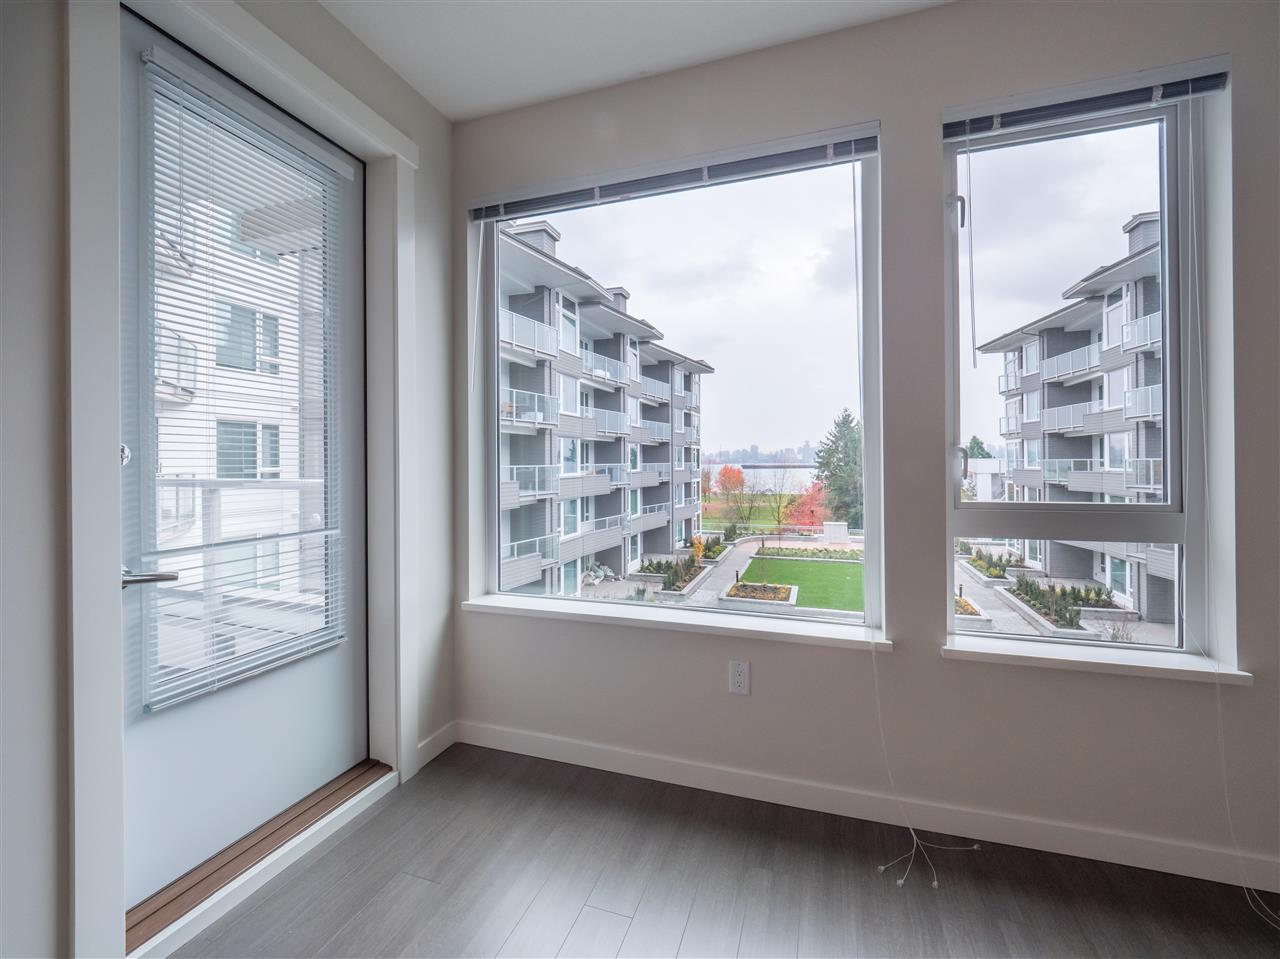 Main Photo: 301 255 W 1ST Street in North Vancouver: Lower Lonsdale Condo for sale : MLS® # R2221010